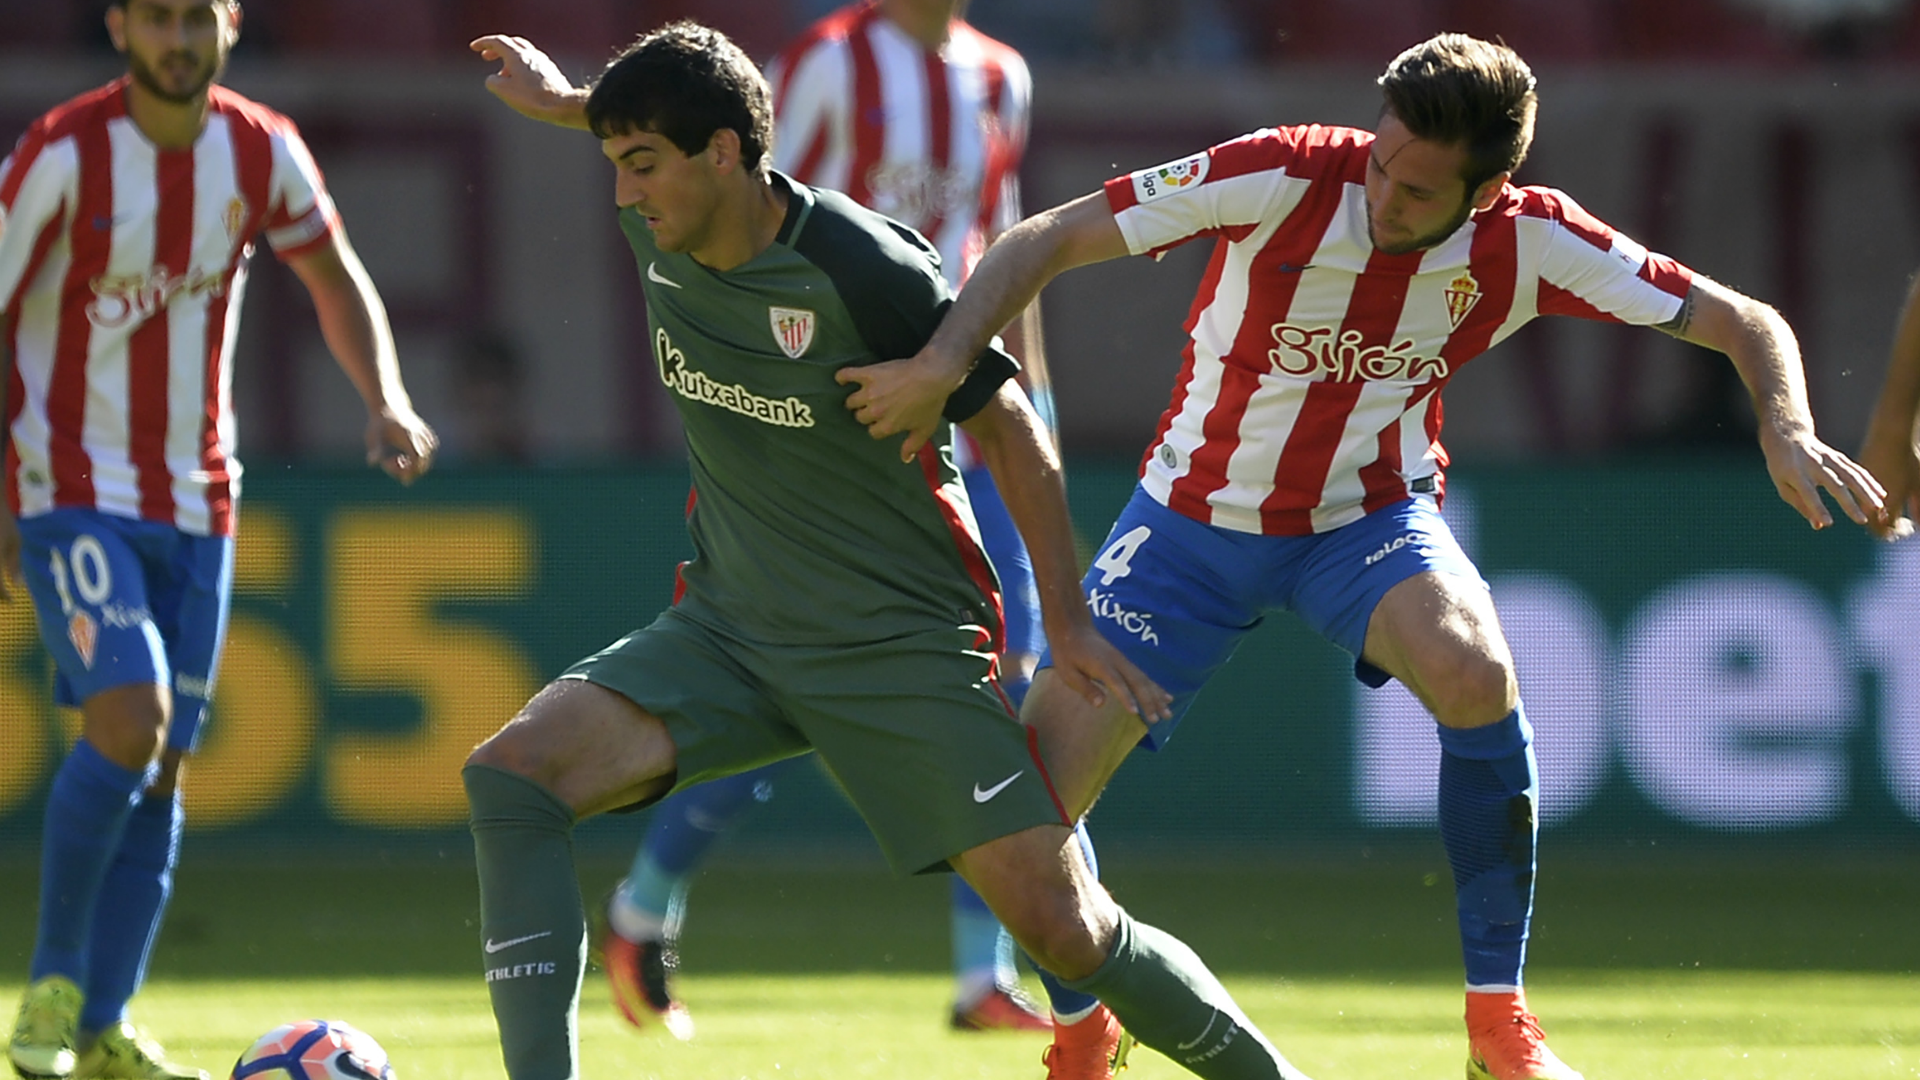 Video: Sporting Gijon vs Athletic Bilbao